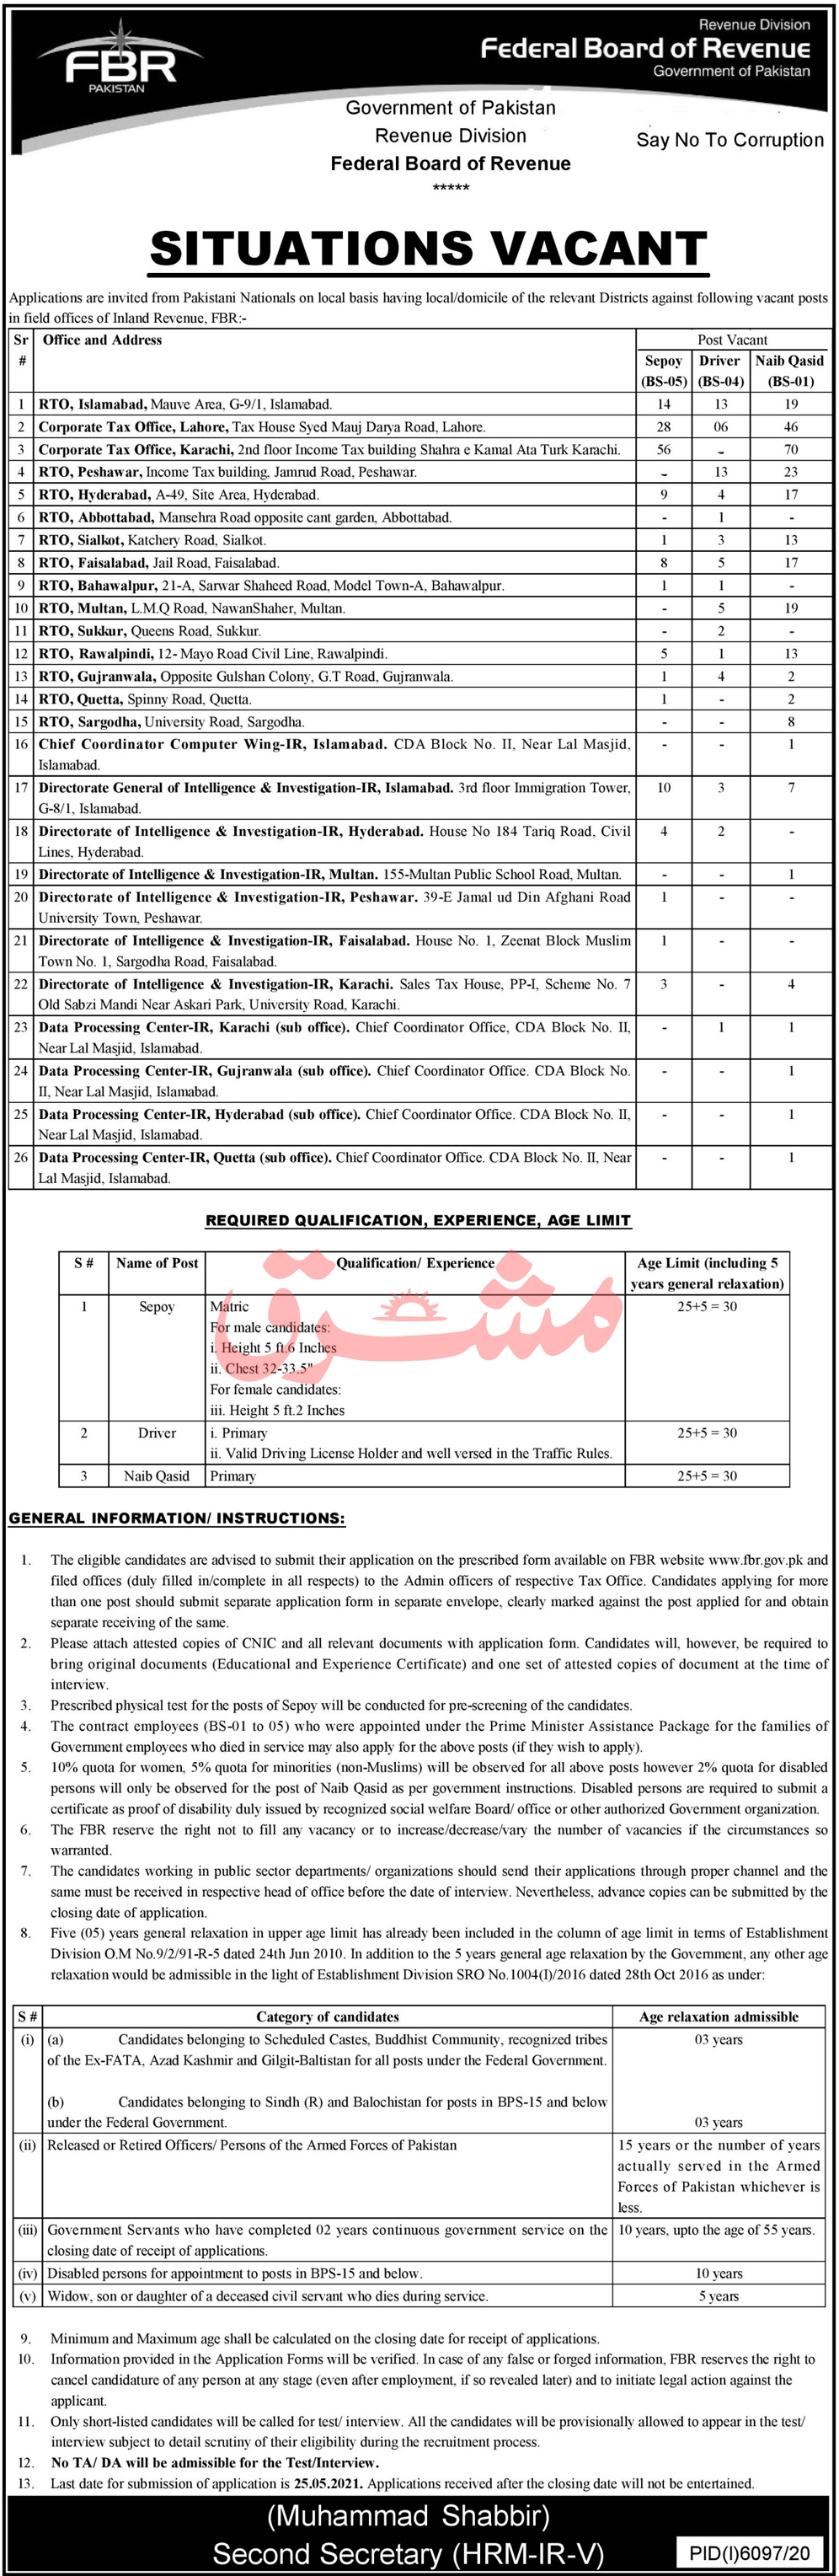 This page is about Federal Board of Revenue (FBR) Jobs May 2021 (473 Posts) Latest Advertisment. Federal Board of Revenue (FBR) invites applications for the posts announced on a contact / permanent basis from suitable candidates for the following positions such as Sepoy, Driver, Naib Qasid. These vacancies are published in Mashriq Newspaper, one of the best News paper of Pakistan. This advertisement has pulibhsed on 09 May 2021 and Last Date to apply is 25 May 2021.